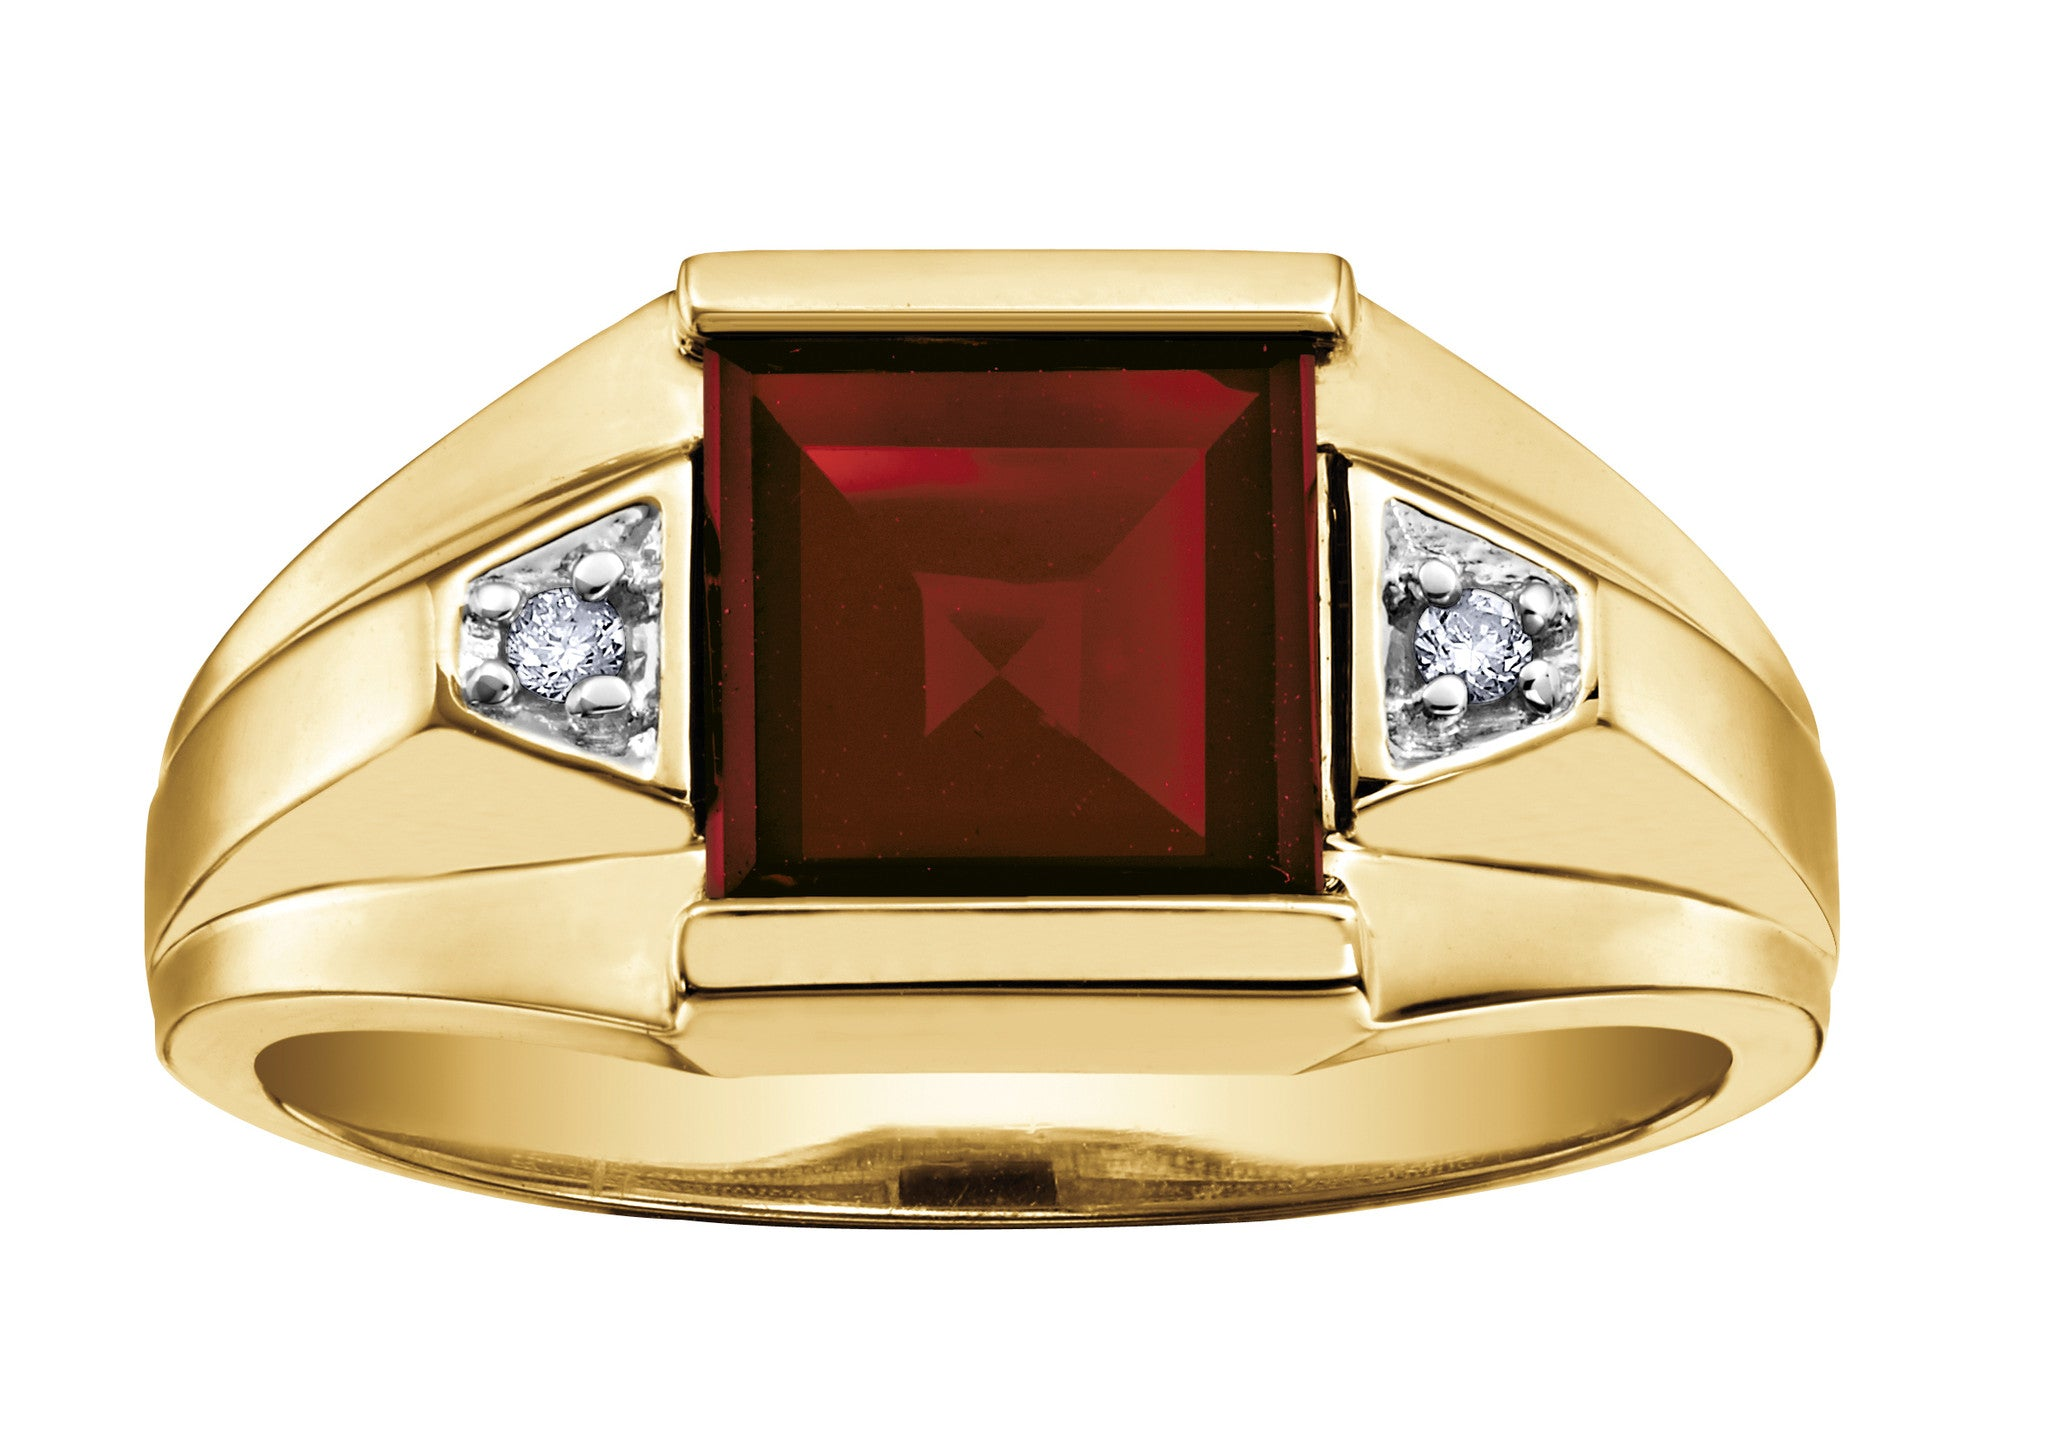 Gents Garnet ring – Burns Jewellers Ltd.